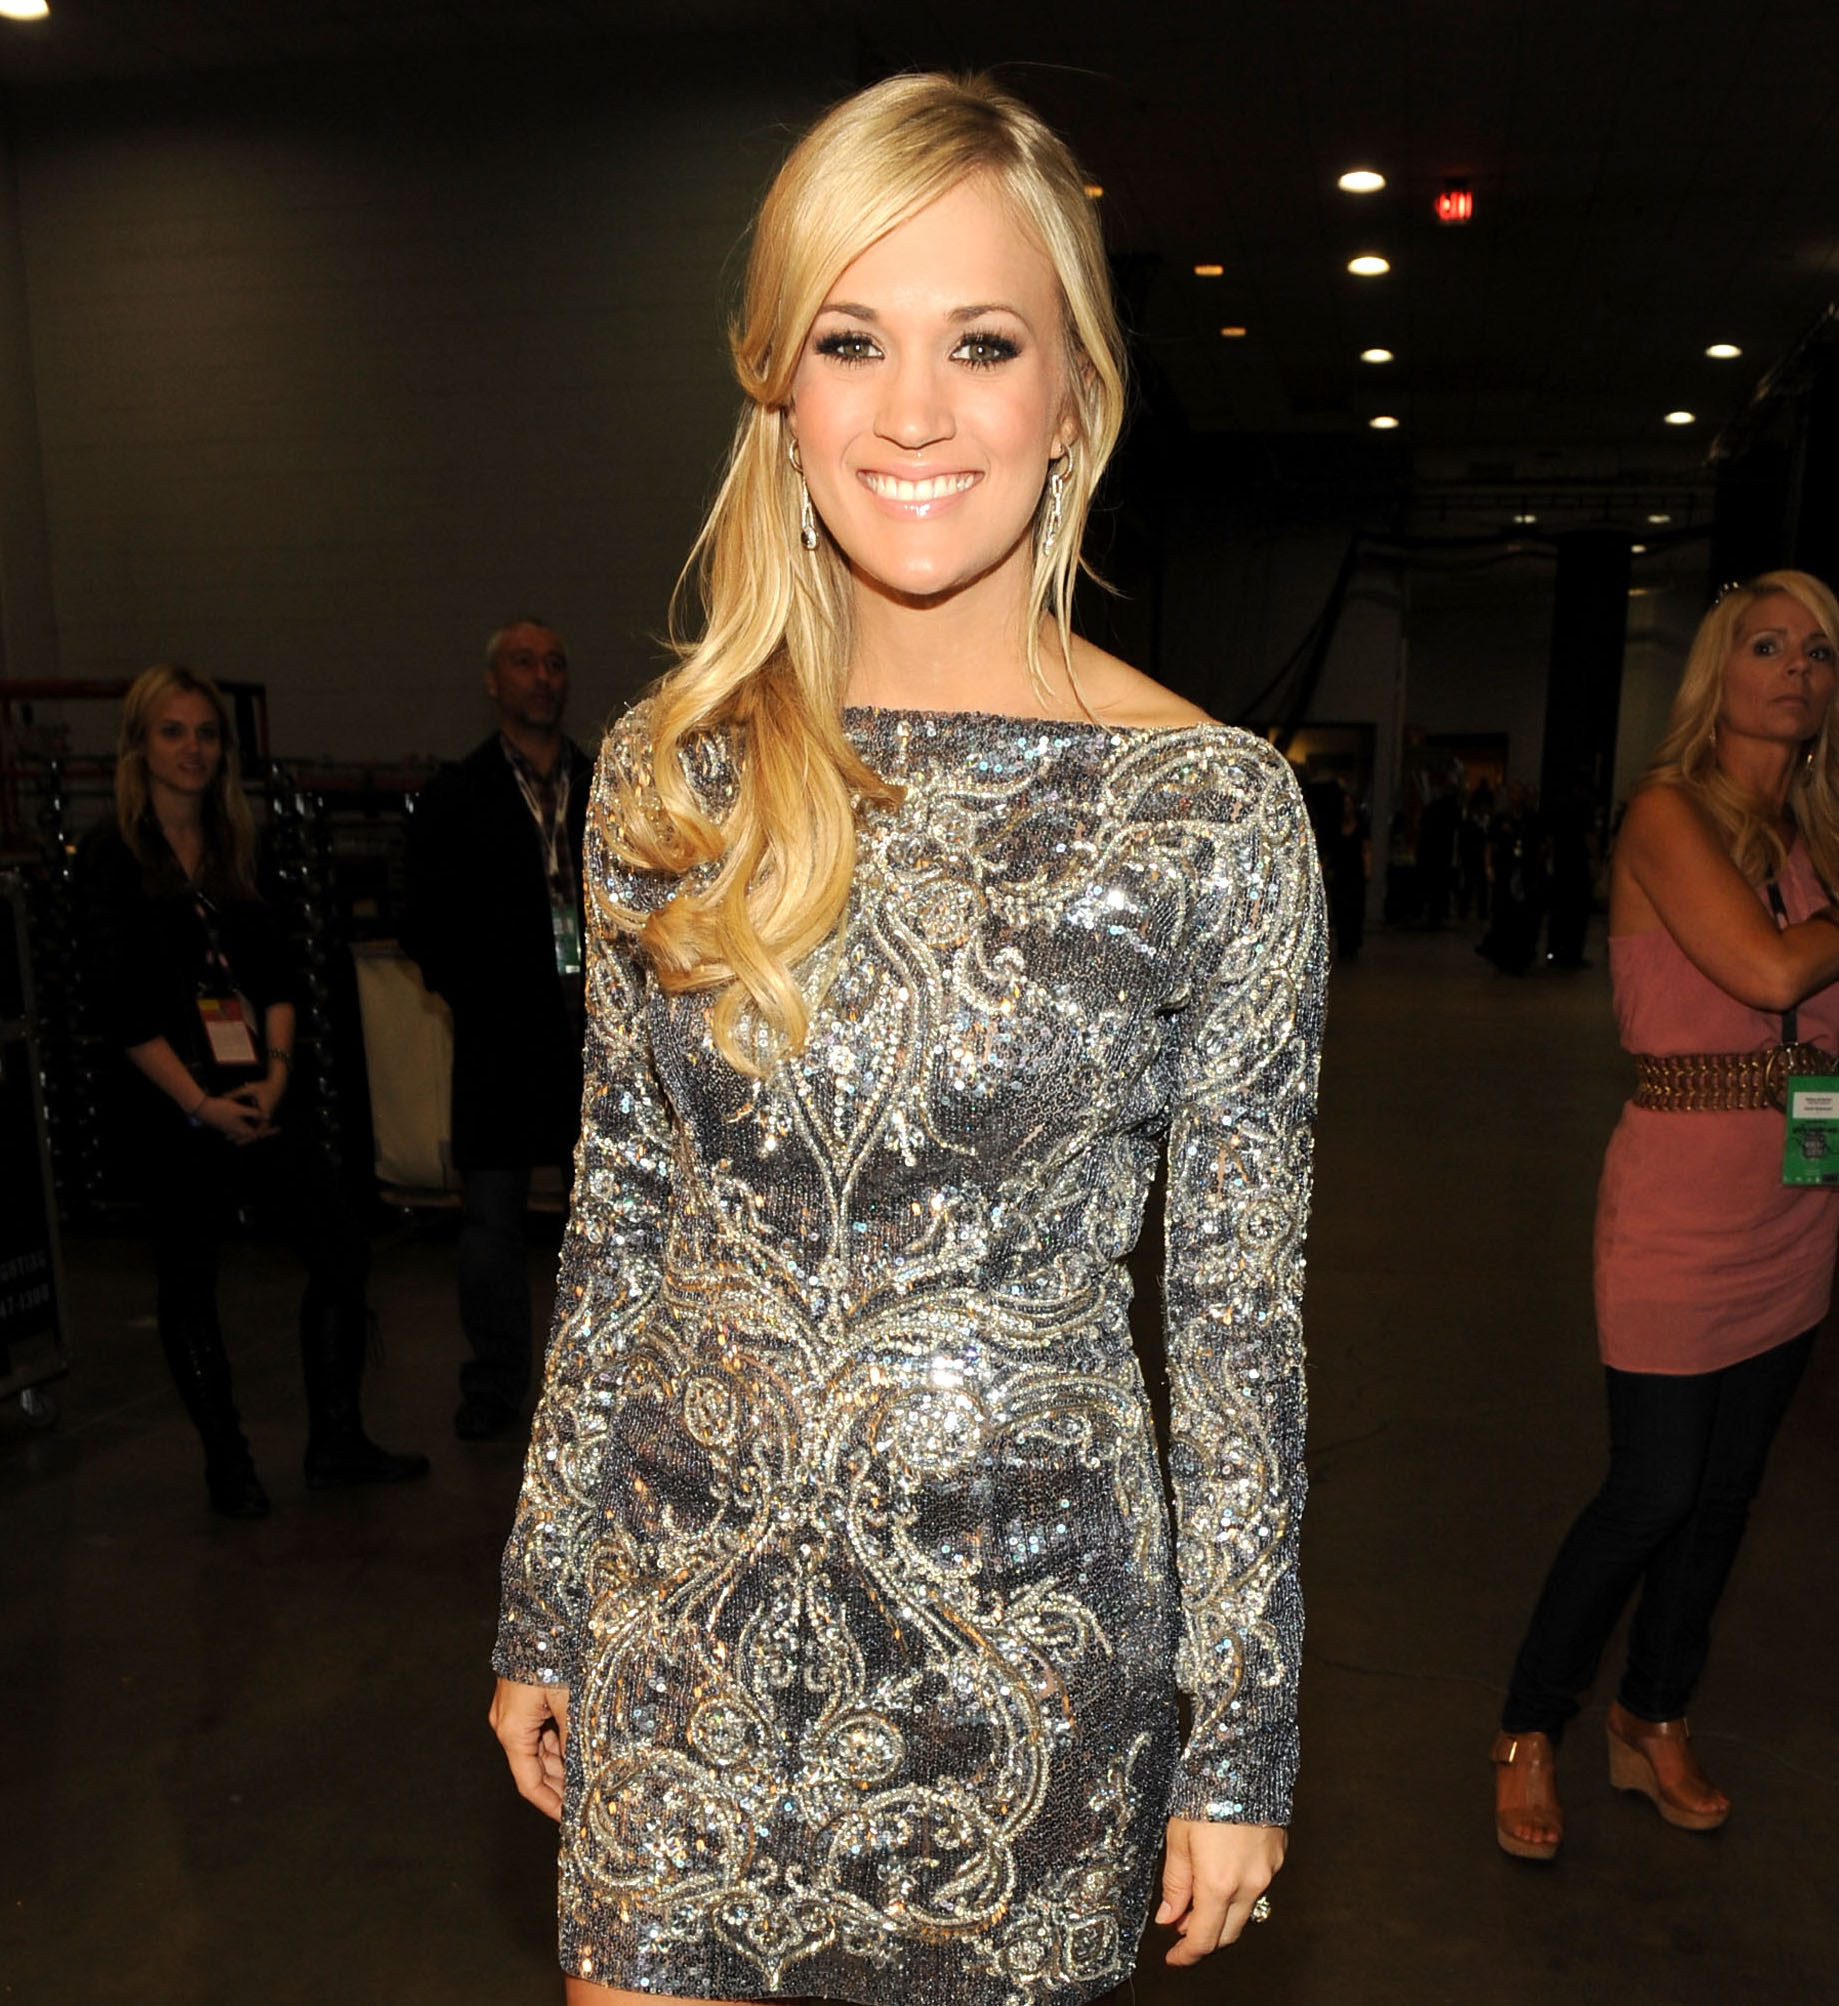 Who Is Carrie Underwood Dating Now